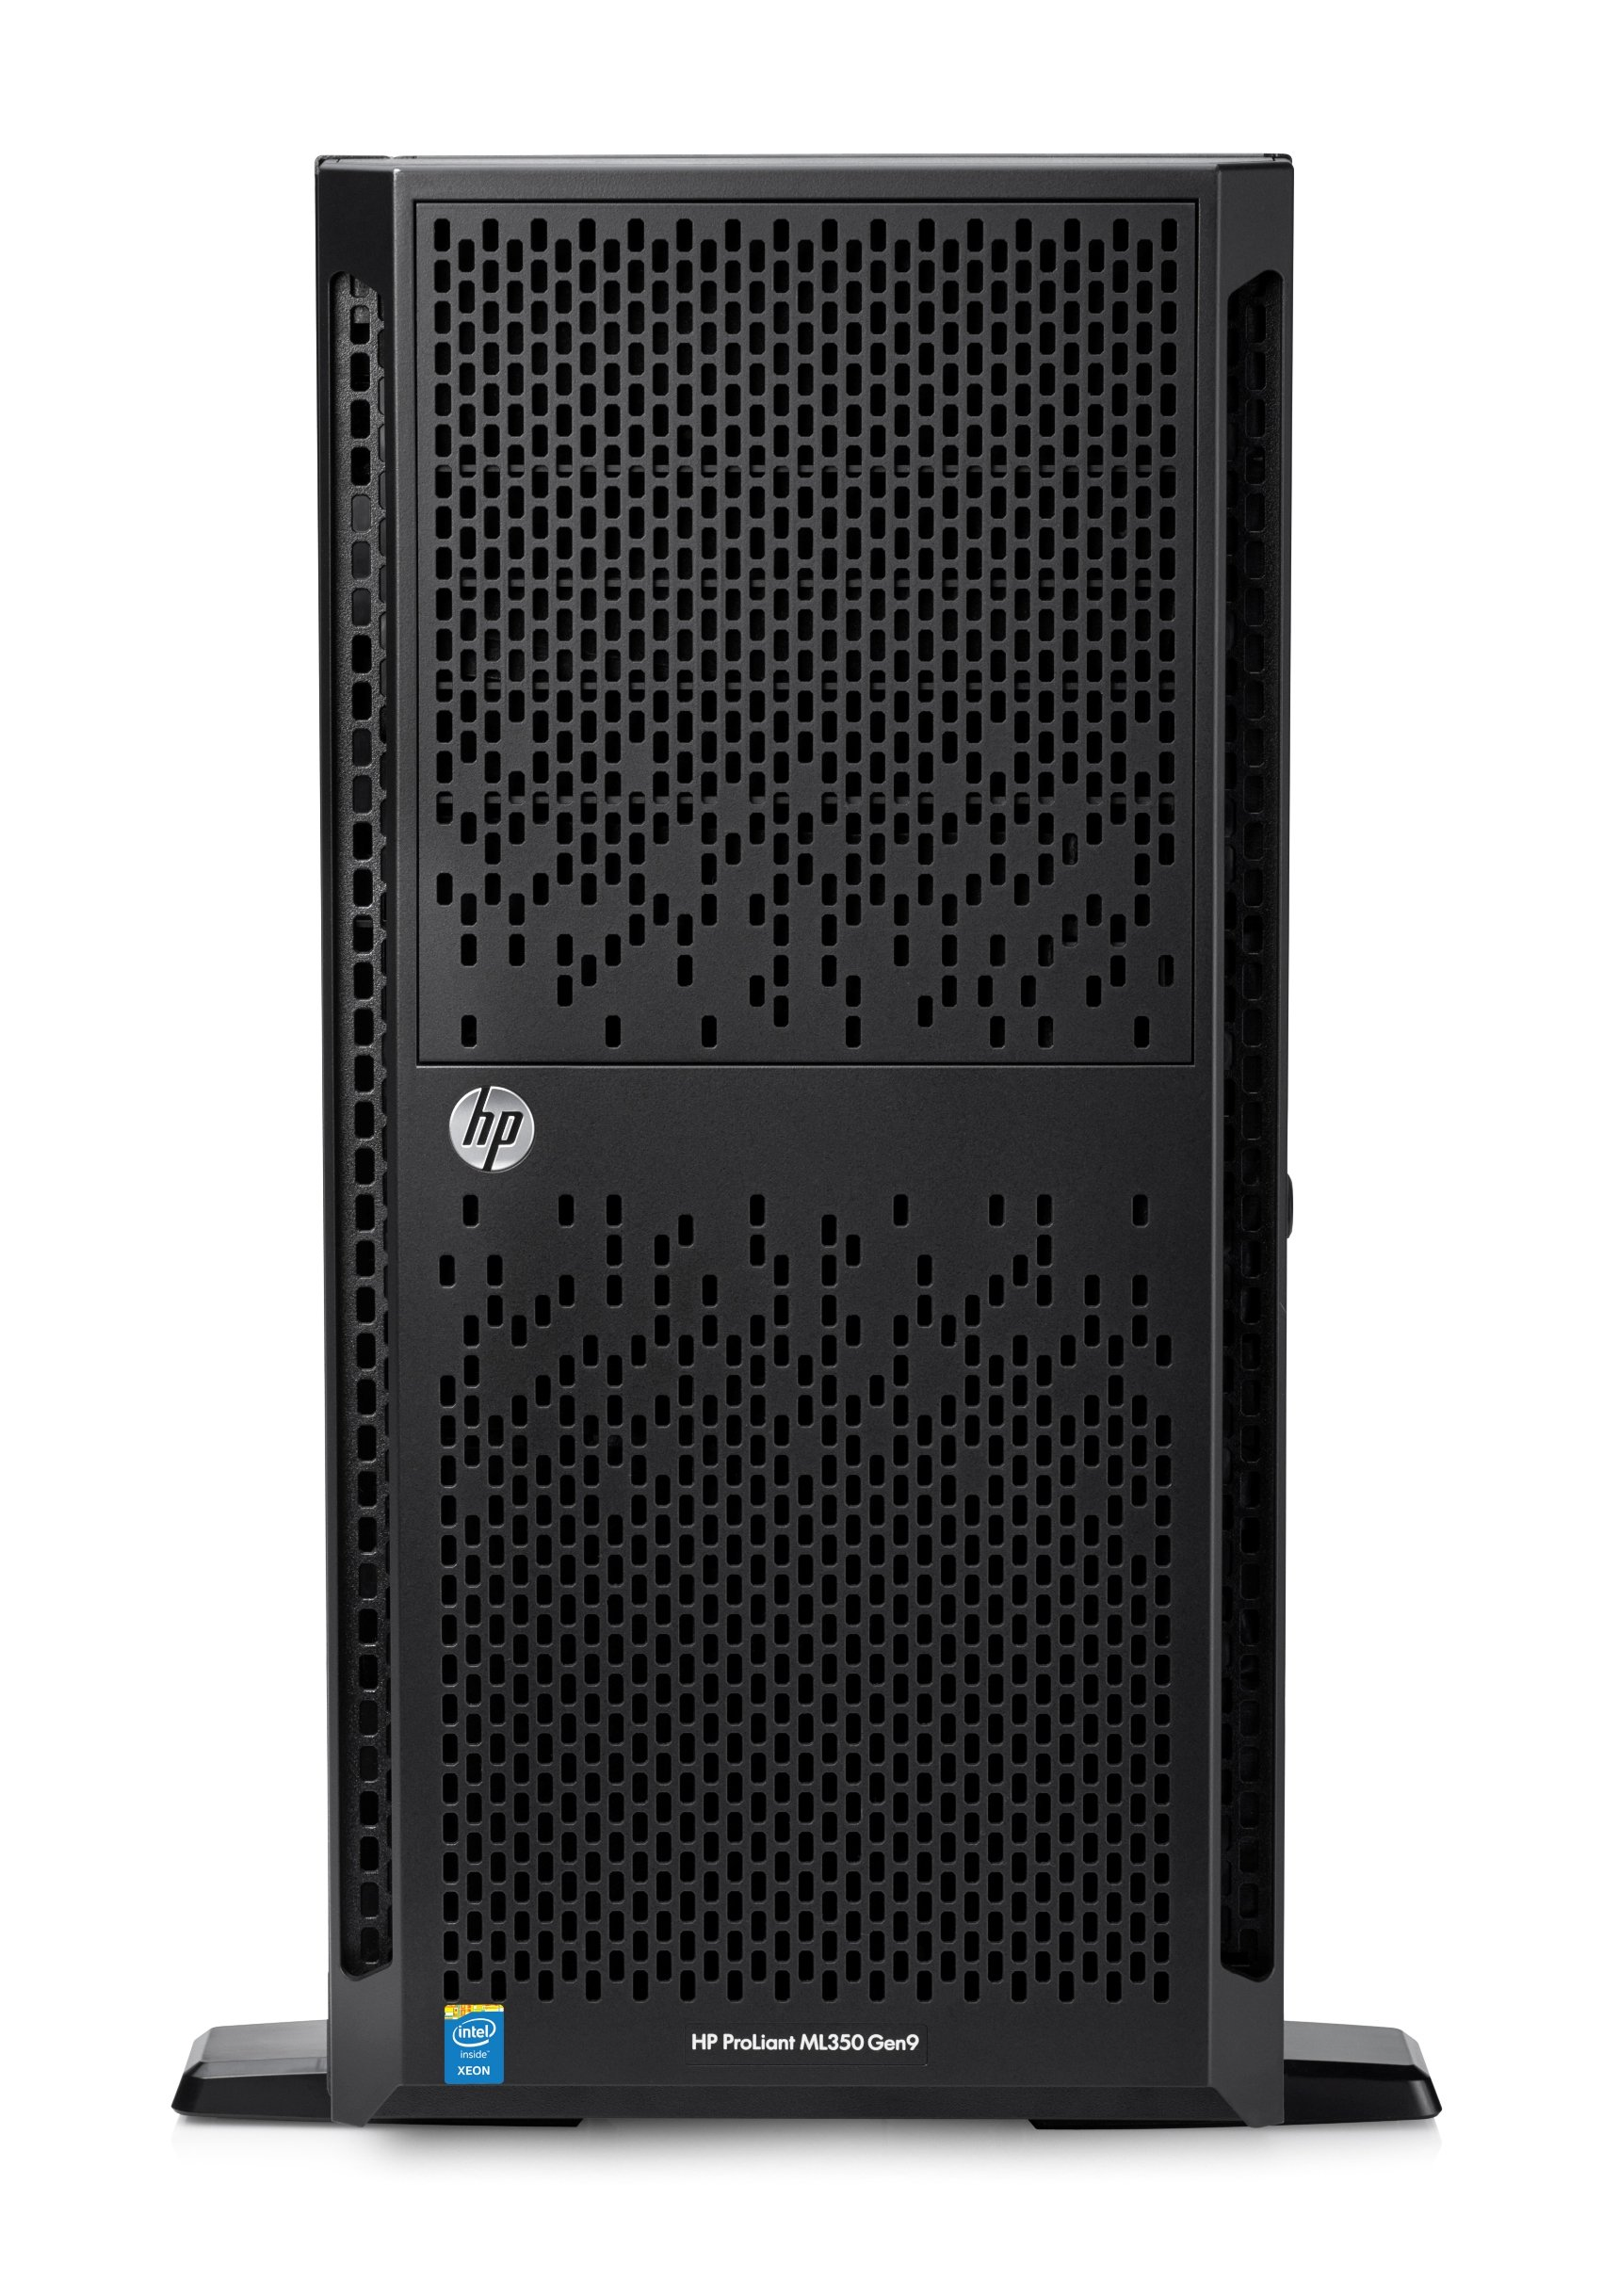 Hewlett Packard 835265-001 Server